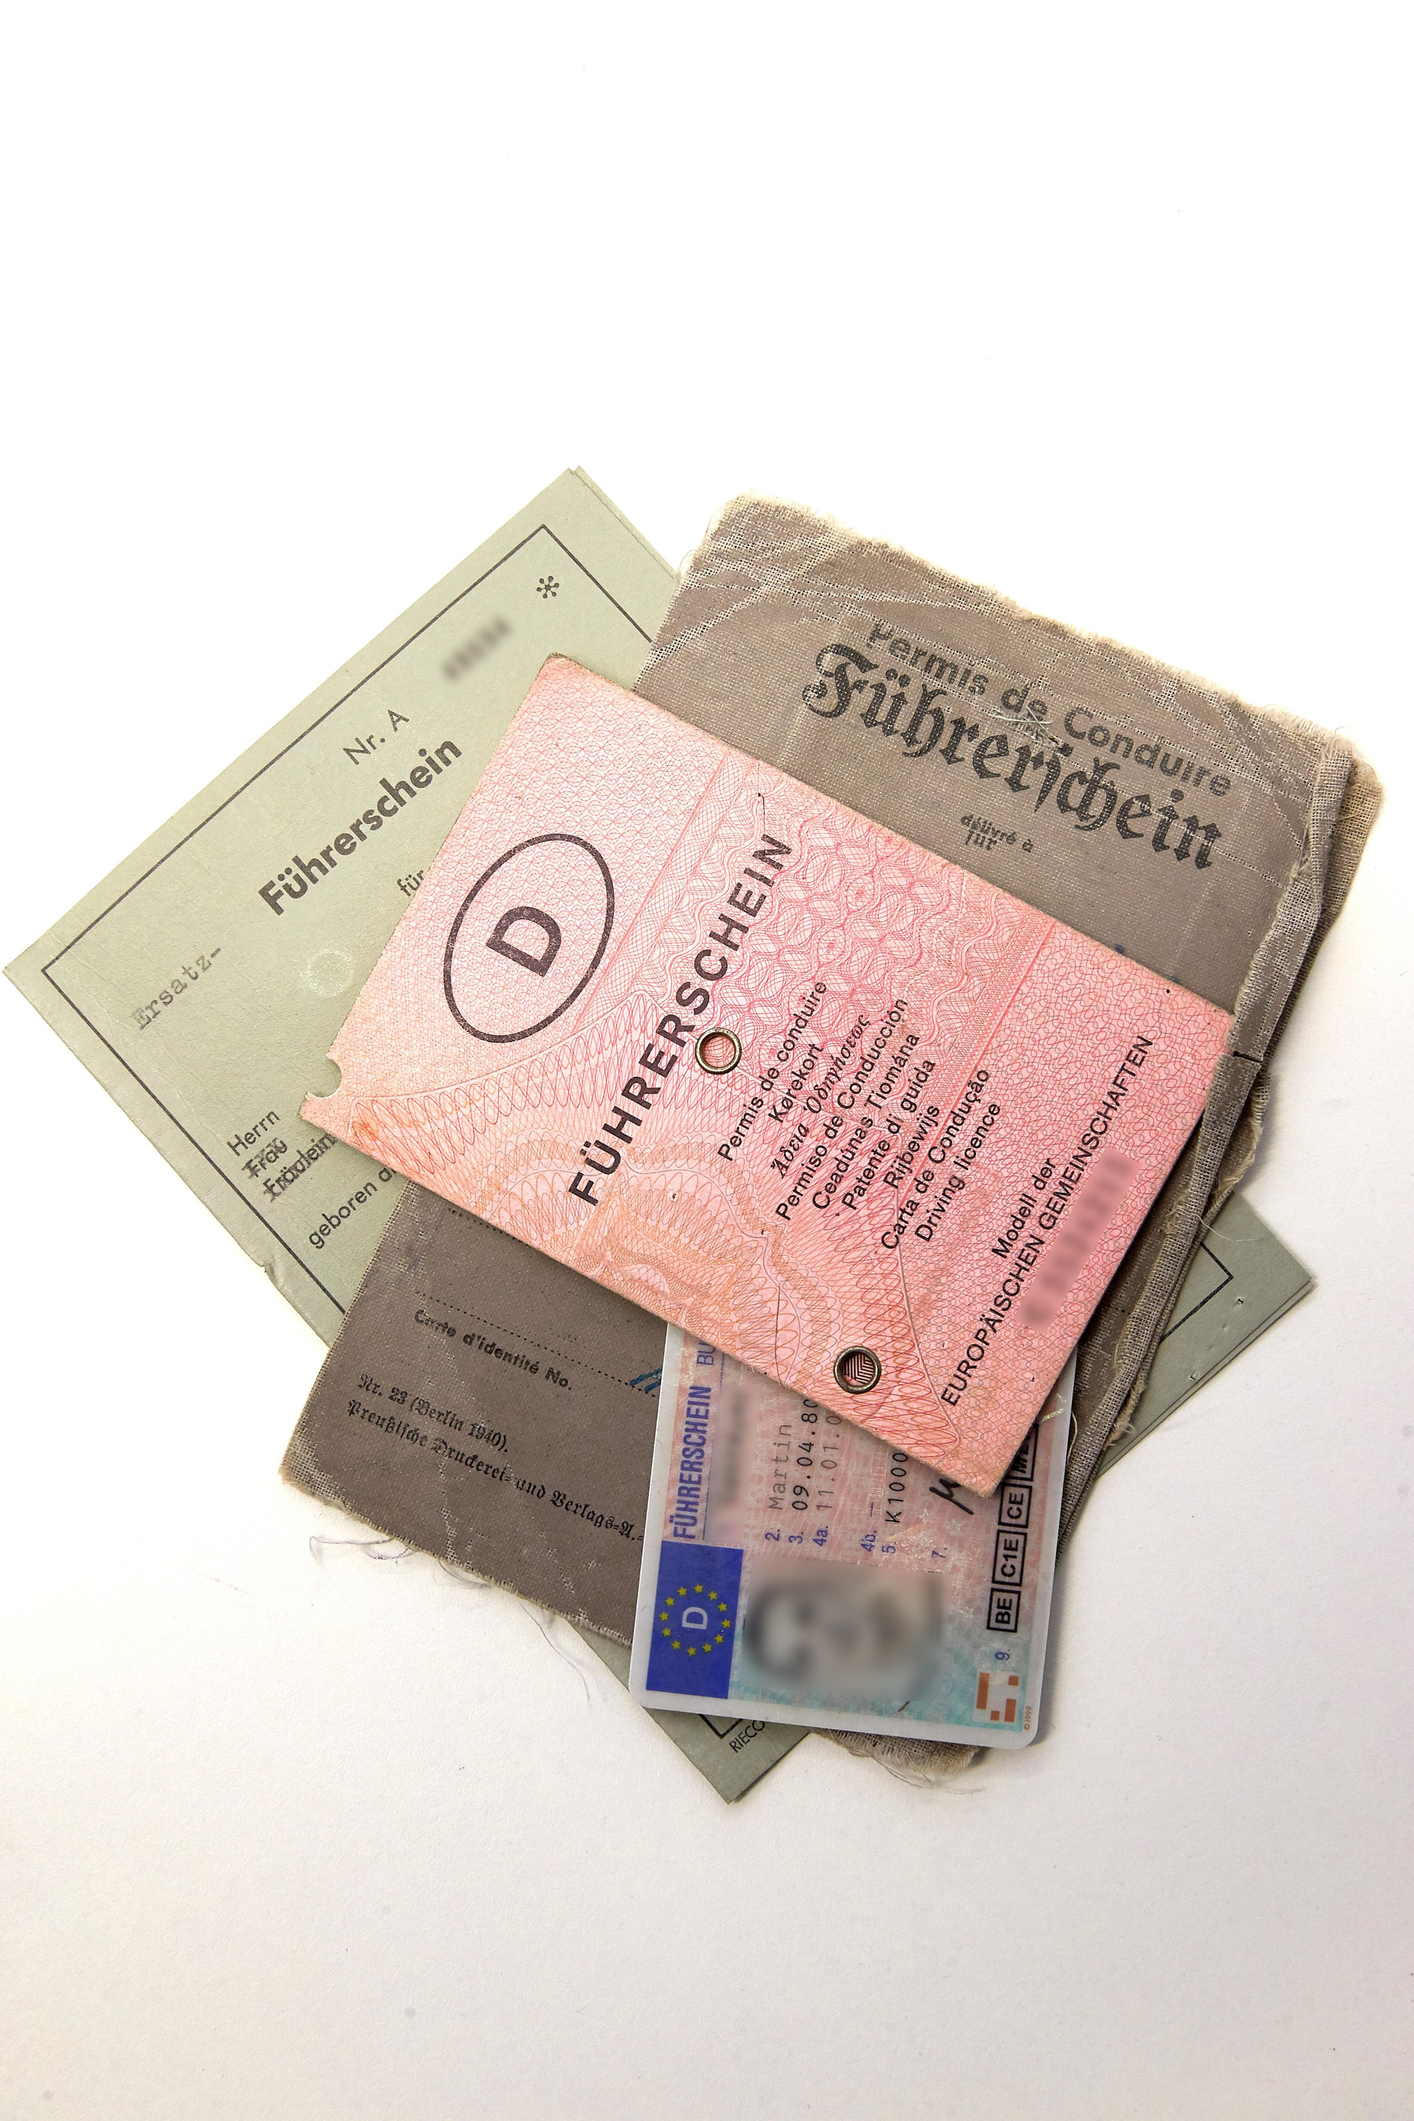 Old and new driver's license, various still valid German driver's licenses, Germany